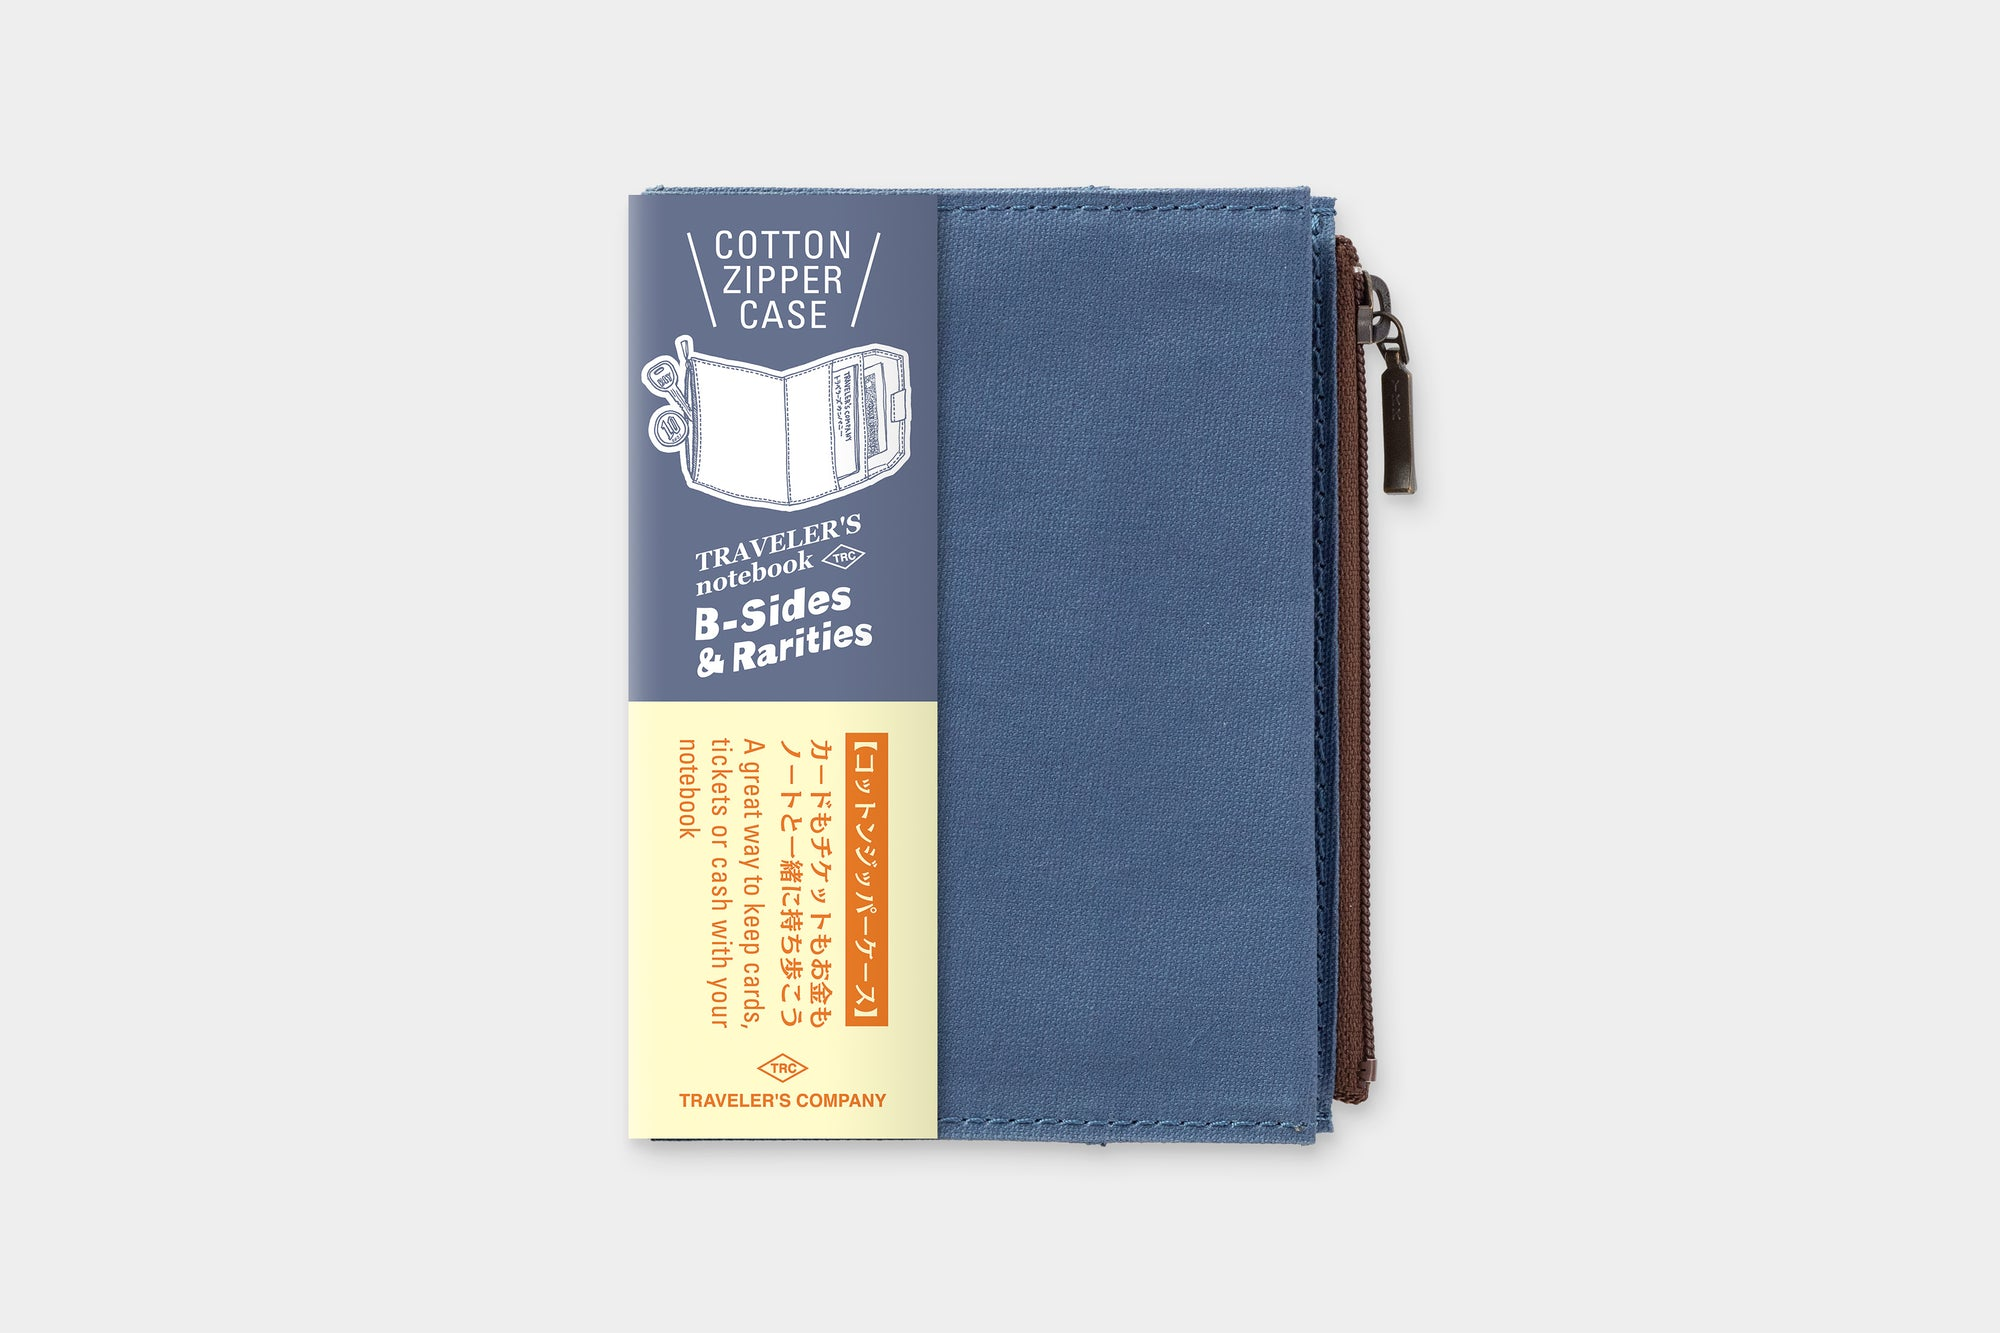 TRAVELER'S LTD Edition - TRAVELER'S notebook Passport Size Cotton Zipper Case Blue